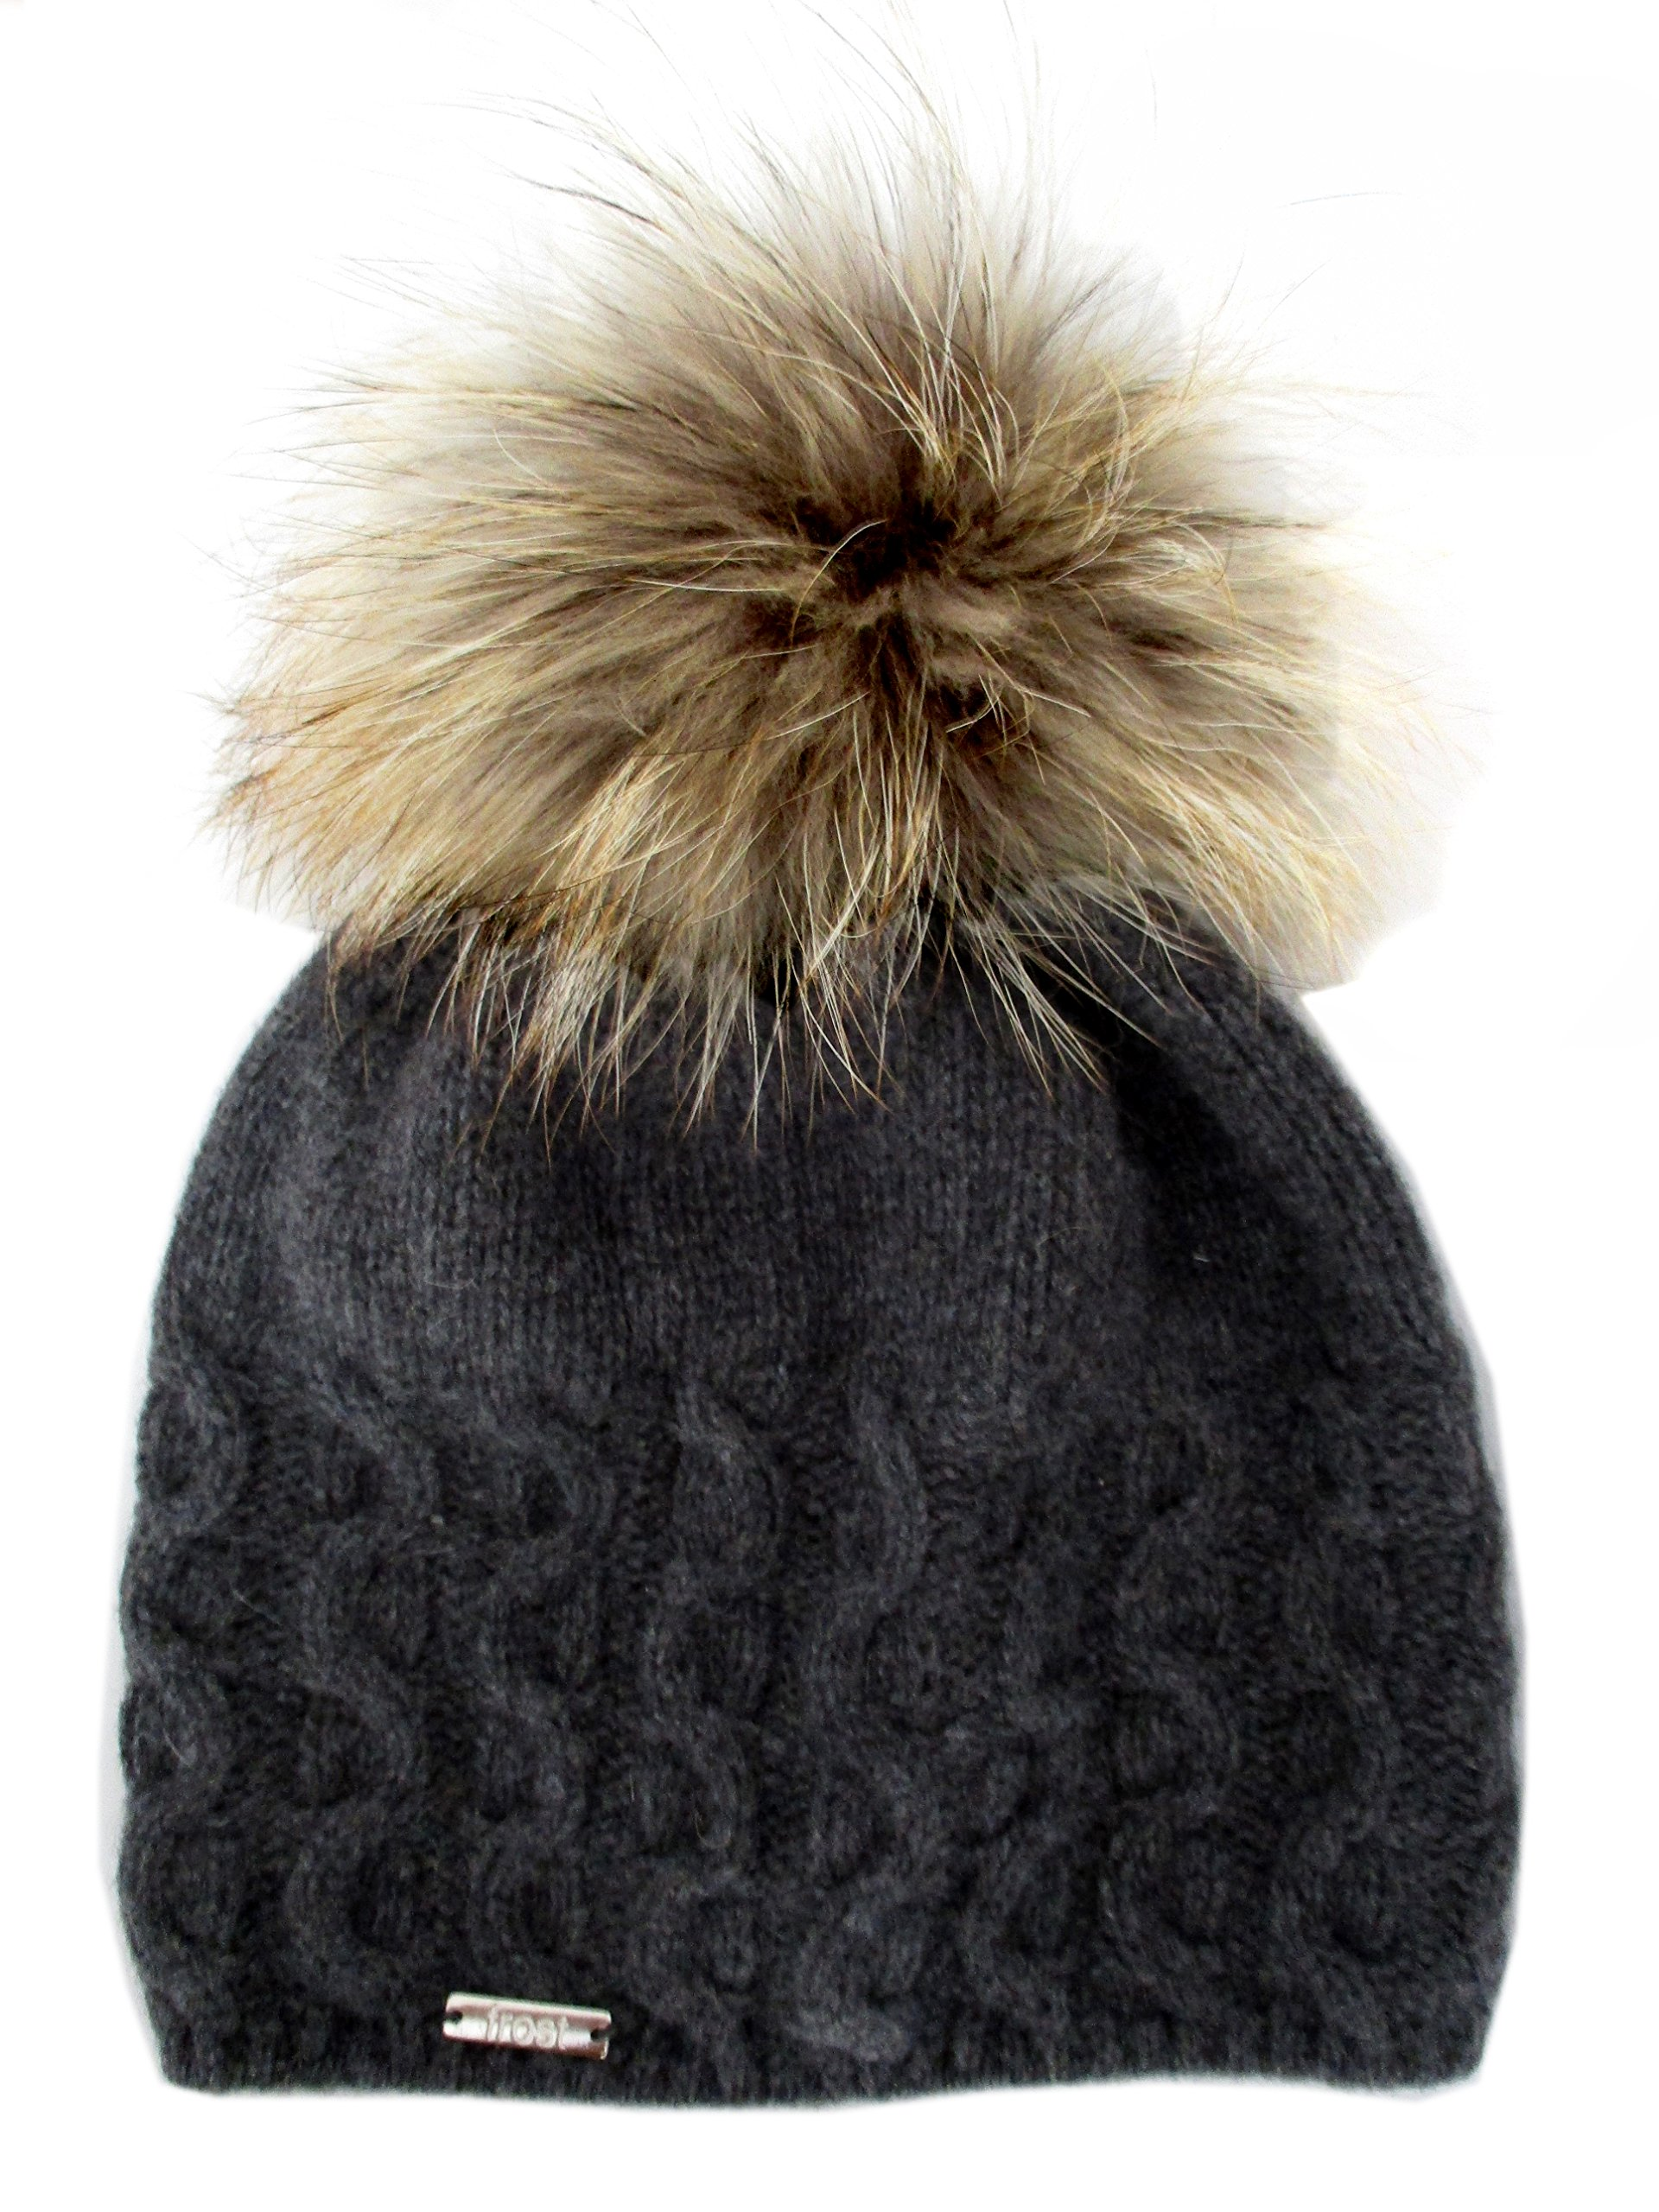 Frost Hats Cashmere Cable Hat with Detachable Genuine Fox Fur Pom CSH-735SRN (Charcoal2) by Frost Hats (Image #1)